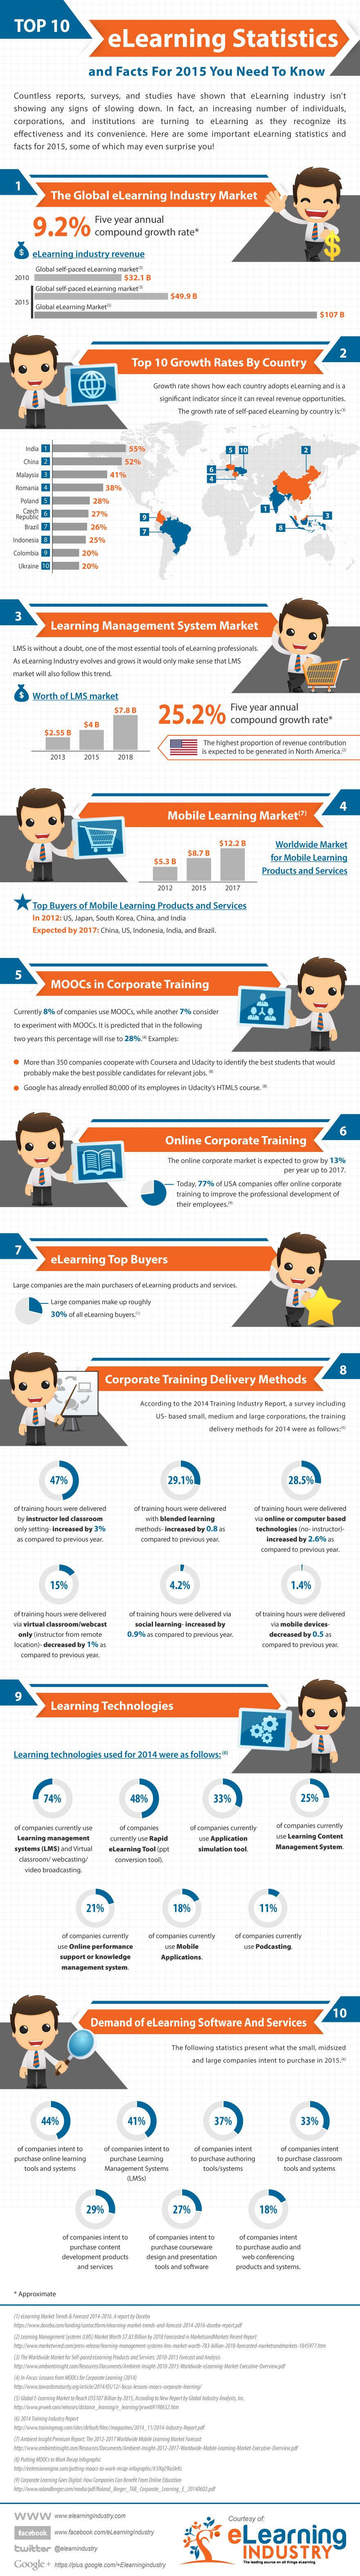 ELearning Stats Show Industry Growth - LearnDash